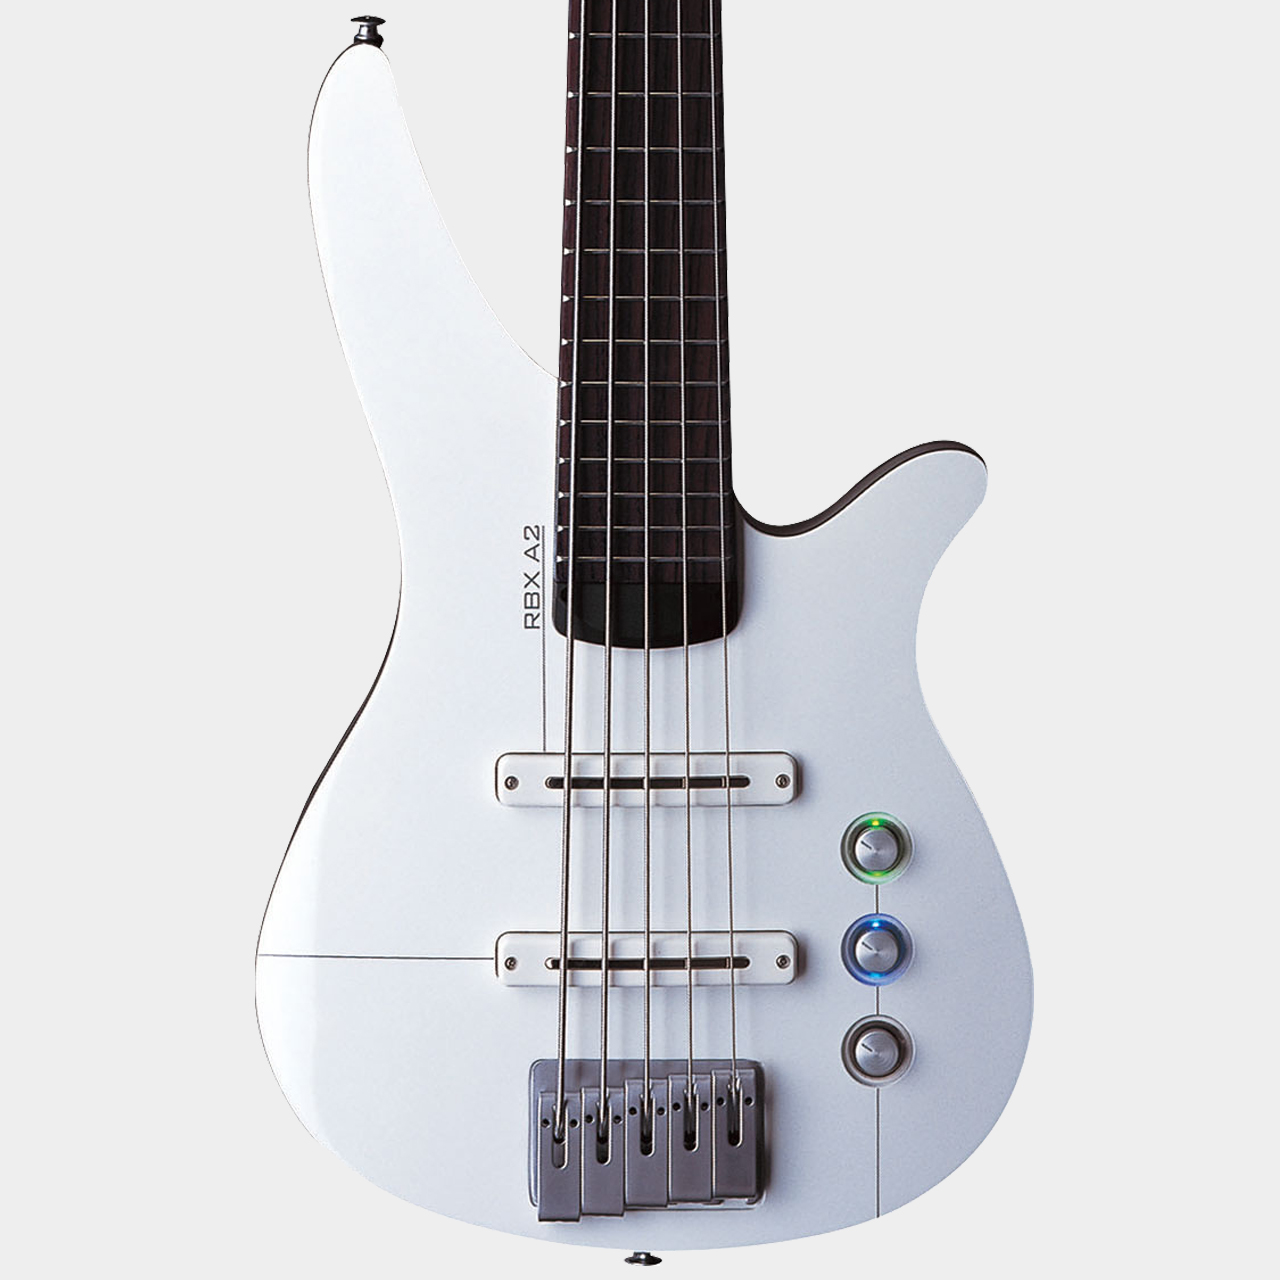 YAMAHA RBX5A2 White/Aircraft Grey Body Detail